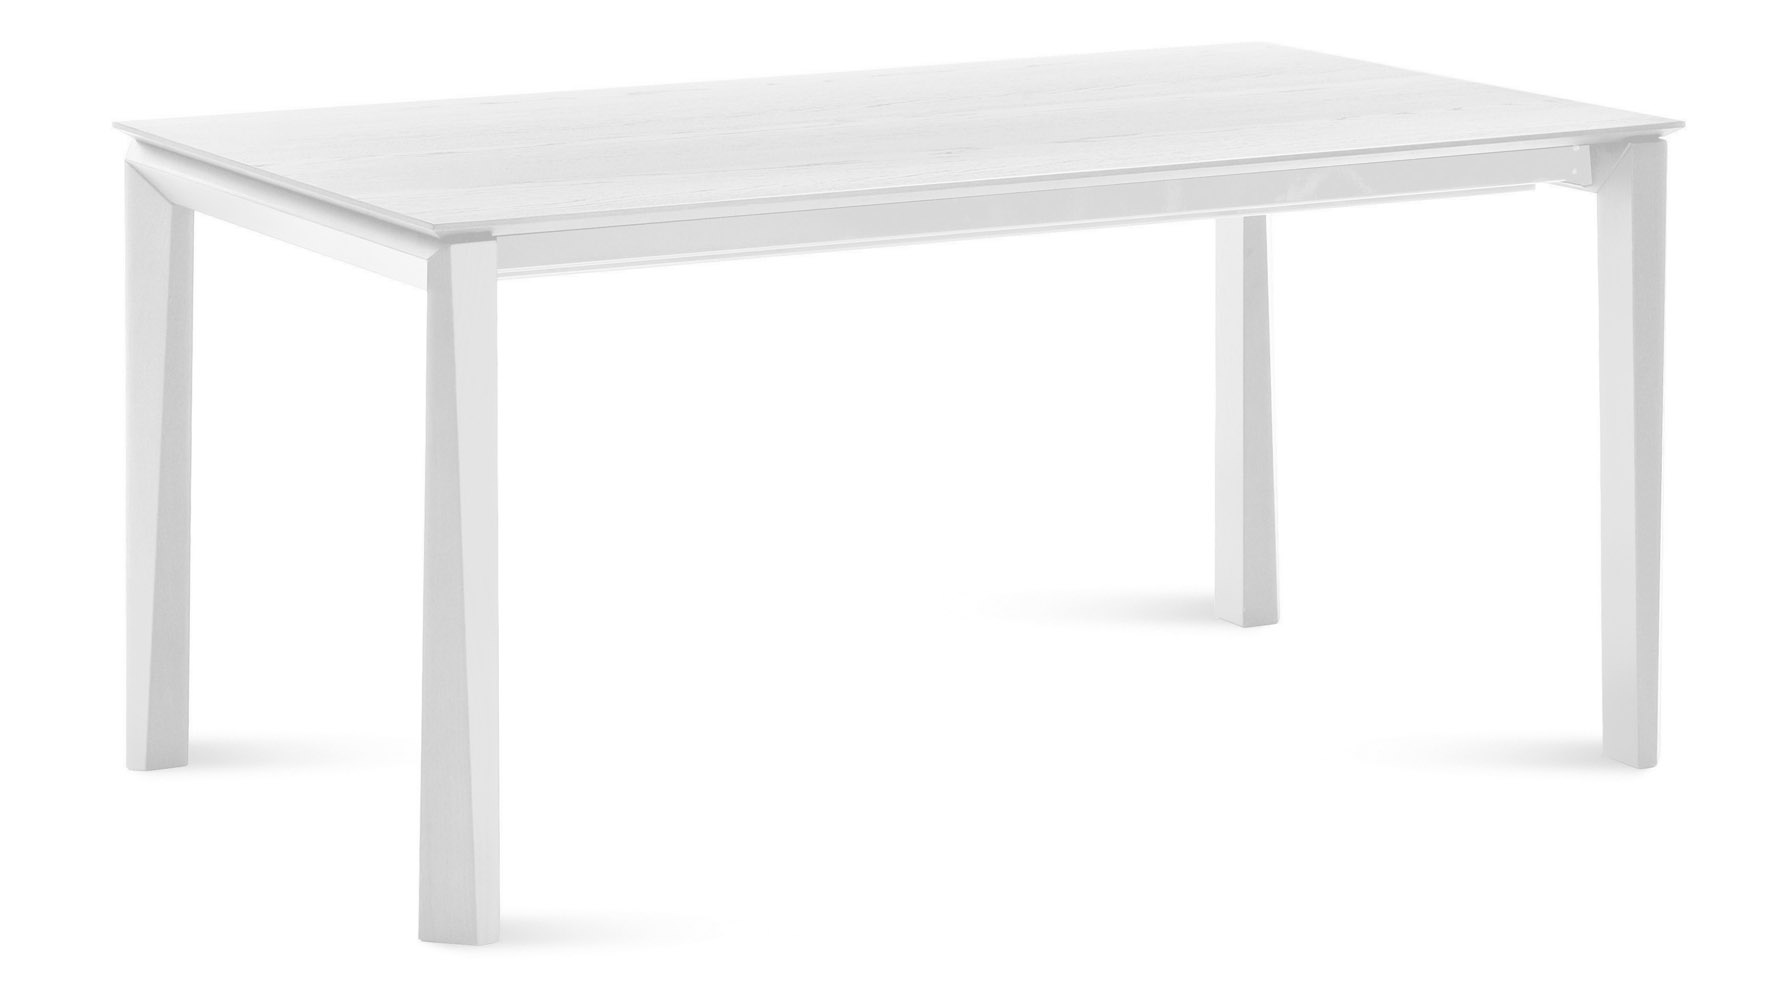 Extendable Rectangular White Matte Lacquer Cortona Dining  : whitemattelacquercortonadiningtable 1 from www.zurifurniture.com size 1778 x 1000 jpeg 99kB